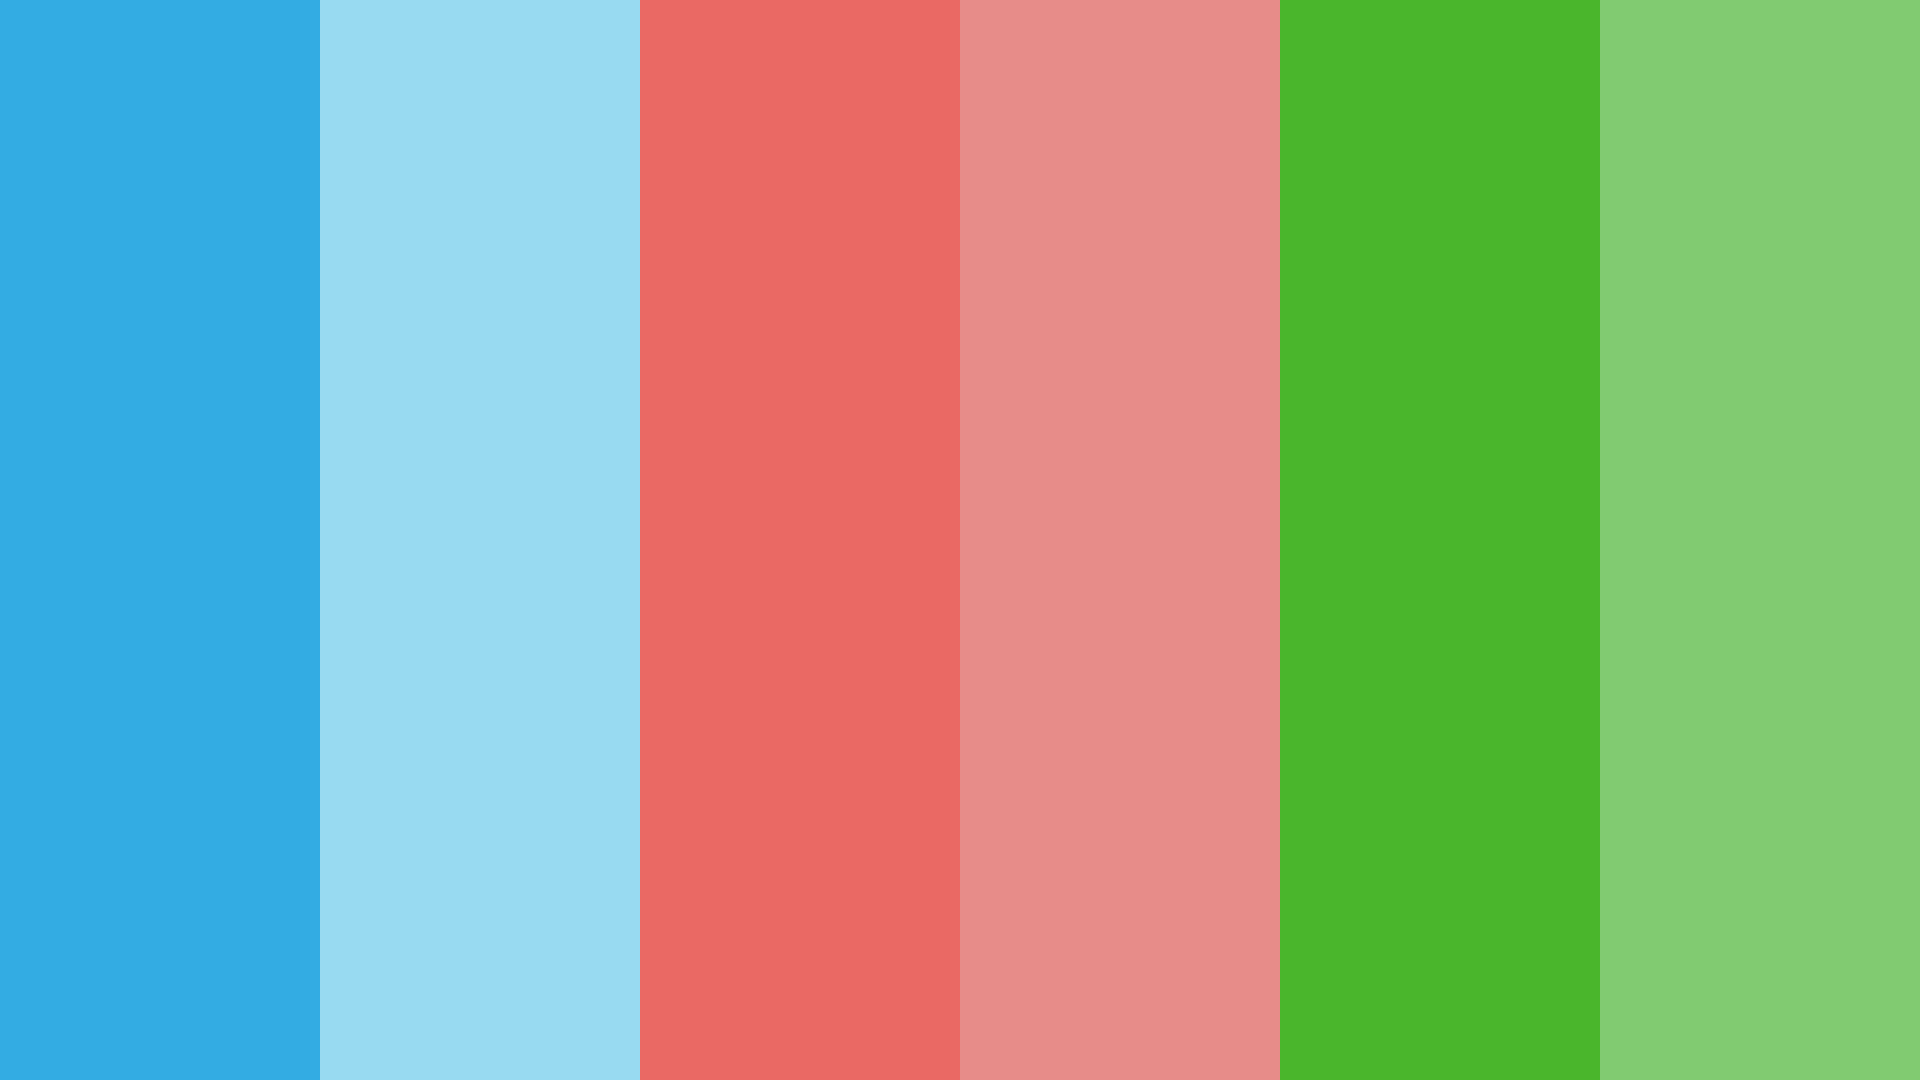 Powerpuff Girls Theme Color Palette